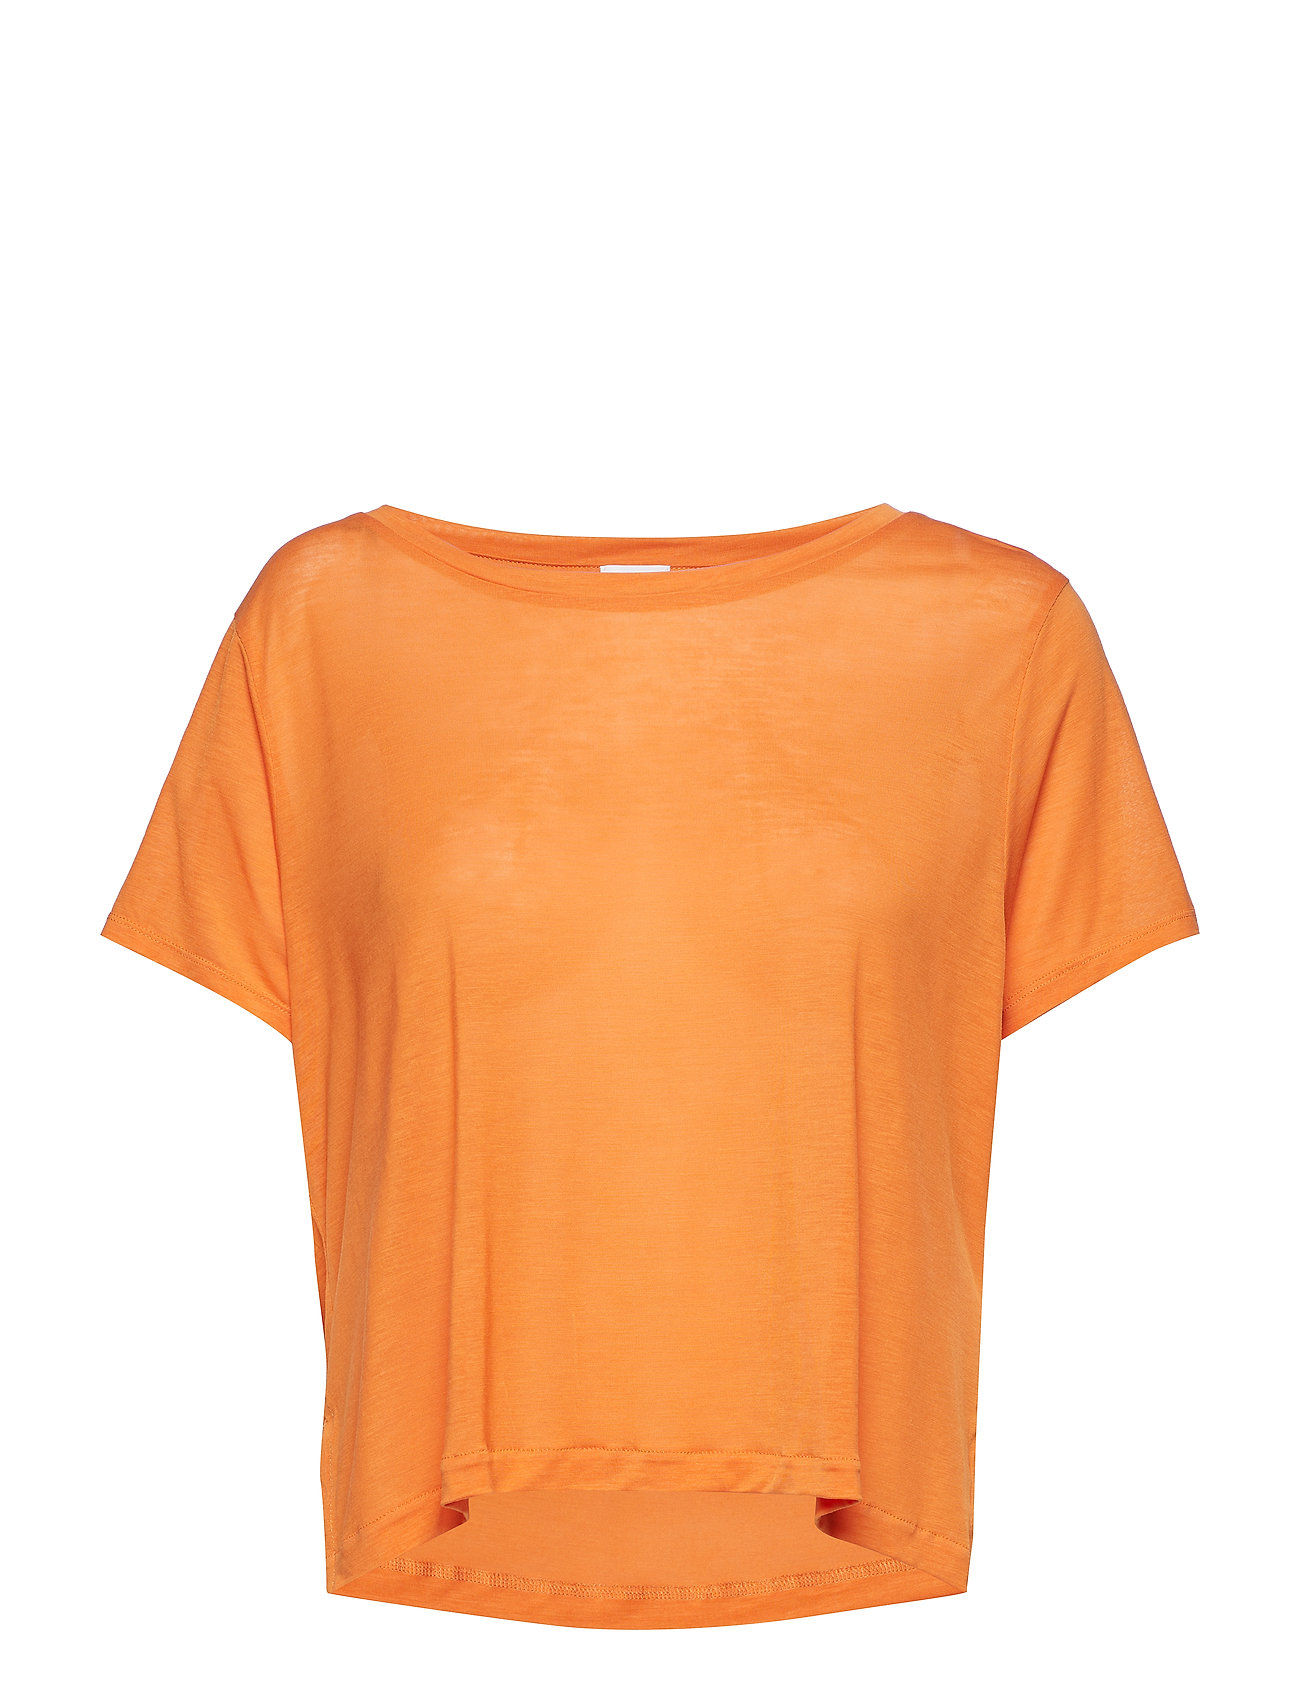 Hope Box Tee - ORANGE